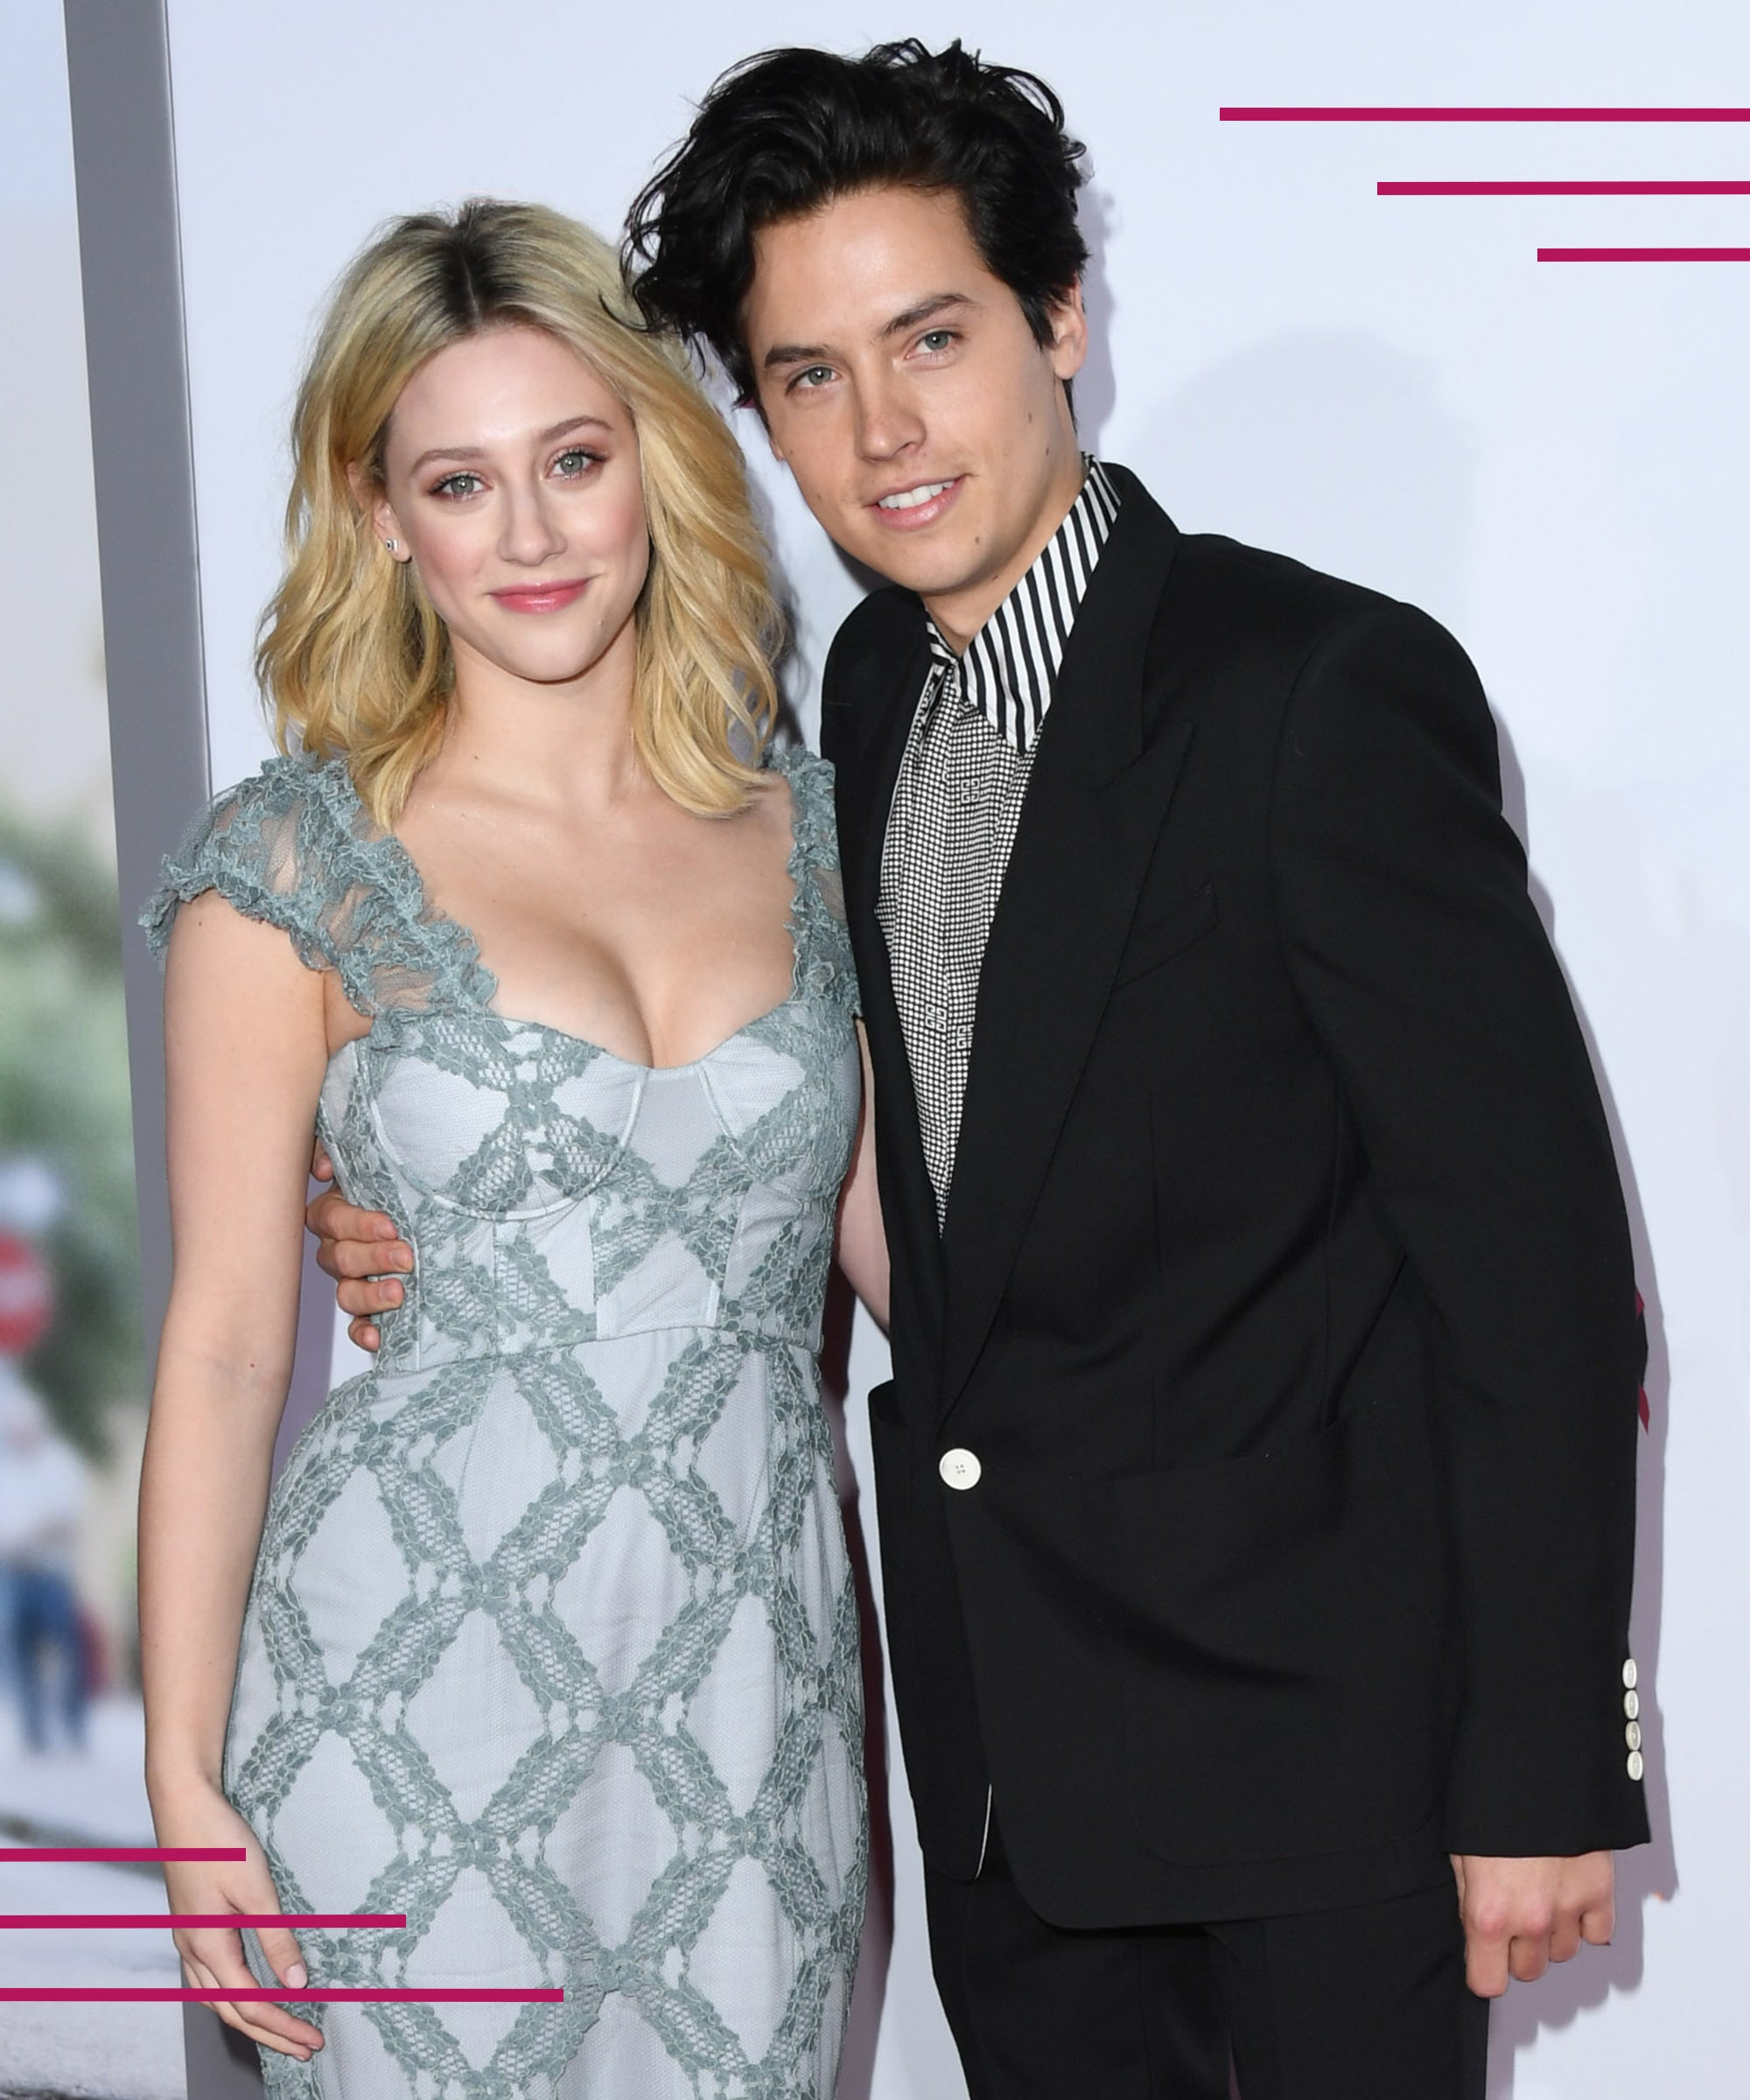 Cole sprouse girlfriend in 2019